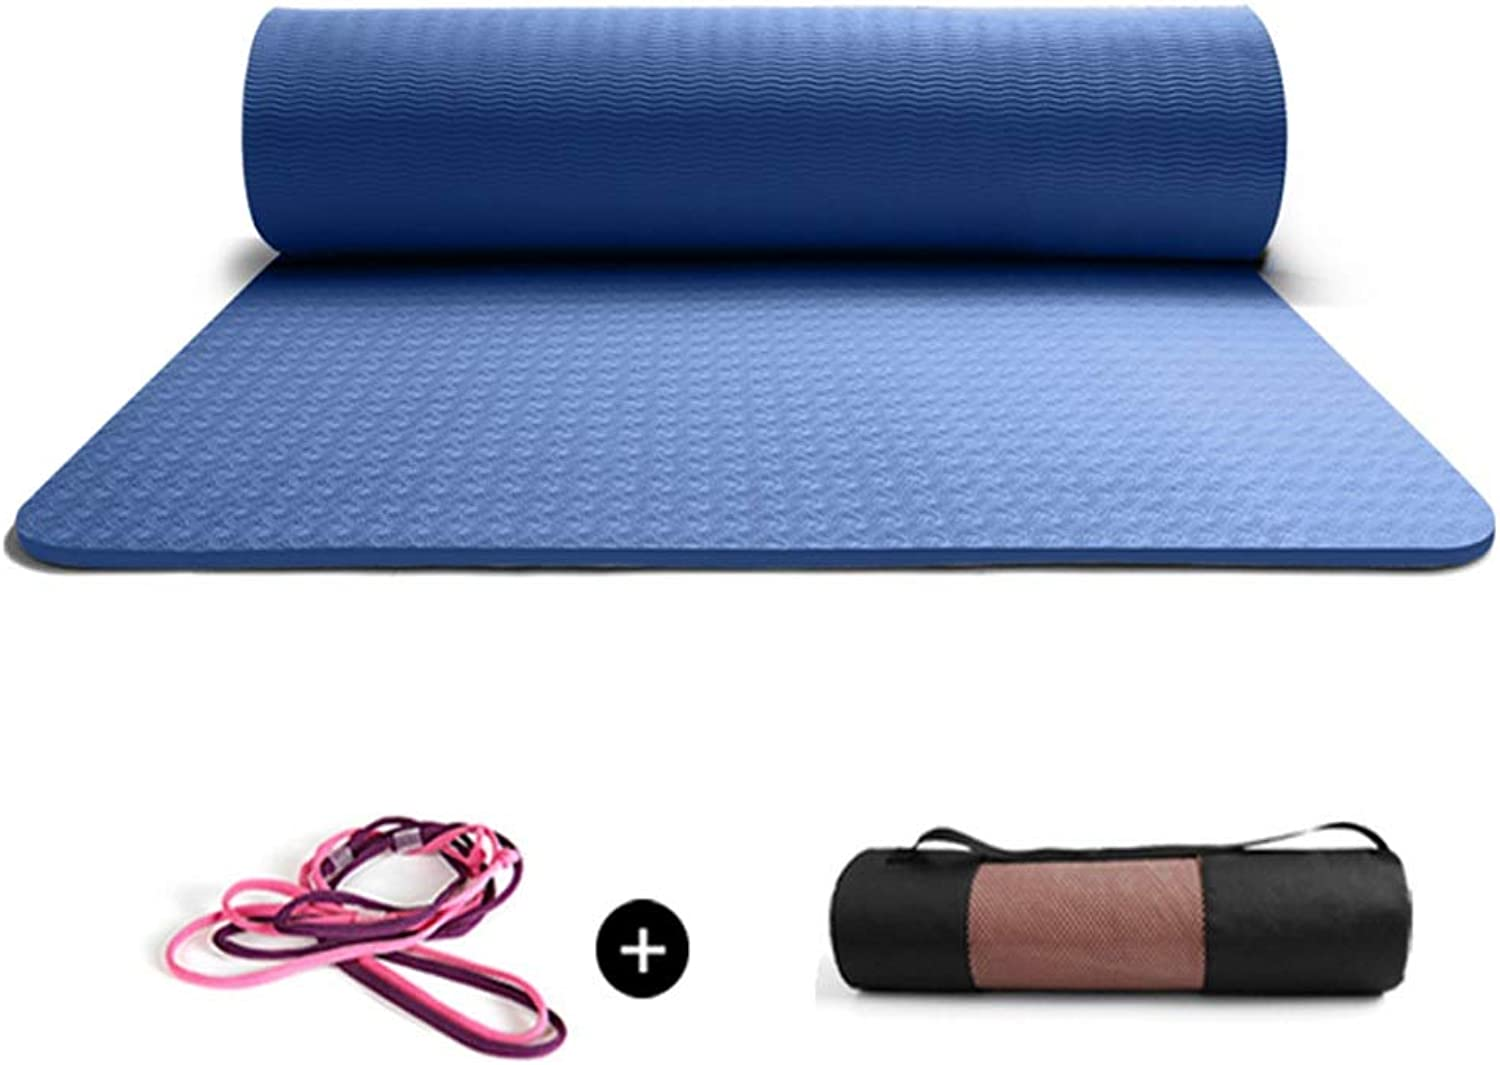 Yoga Pilates Mats Eco Friendly Fitness Training Mat Camping Yoga Cushion for Men and Women with Carrying Strap18380cm 6 colors Available Variety of colors Available (color   blueee, Size   6mm)